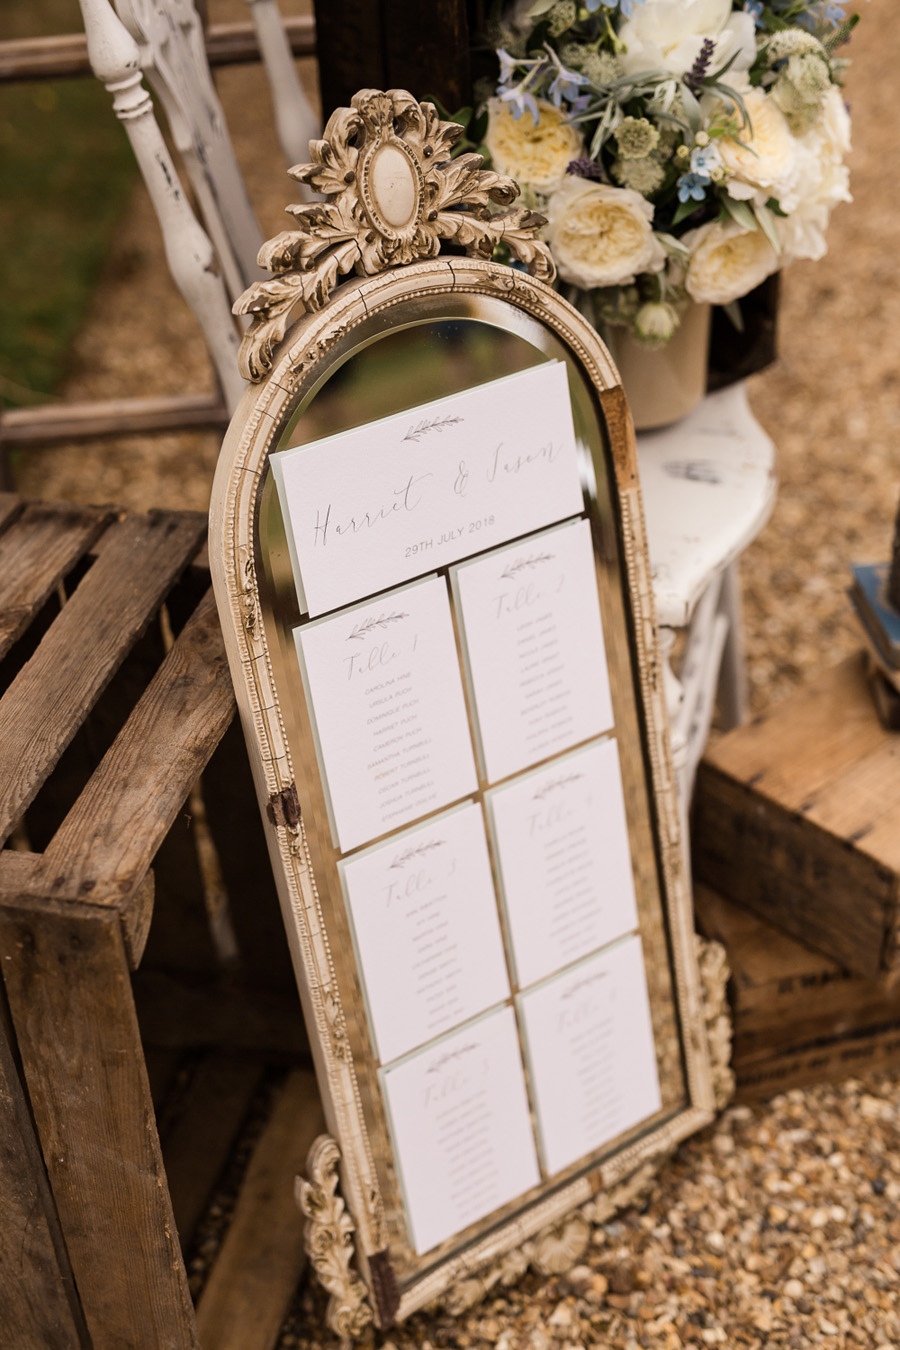 Cambridgeshire venue Lattenbury Hill wedding style ideas. Images by Sarah Brookes Photography (22)